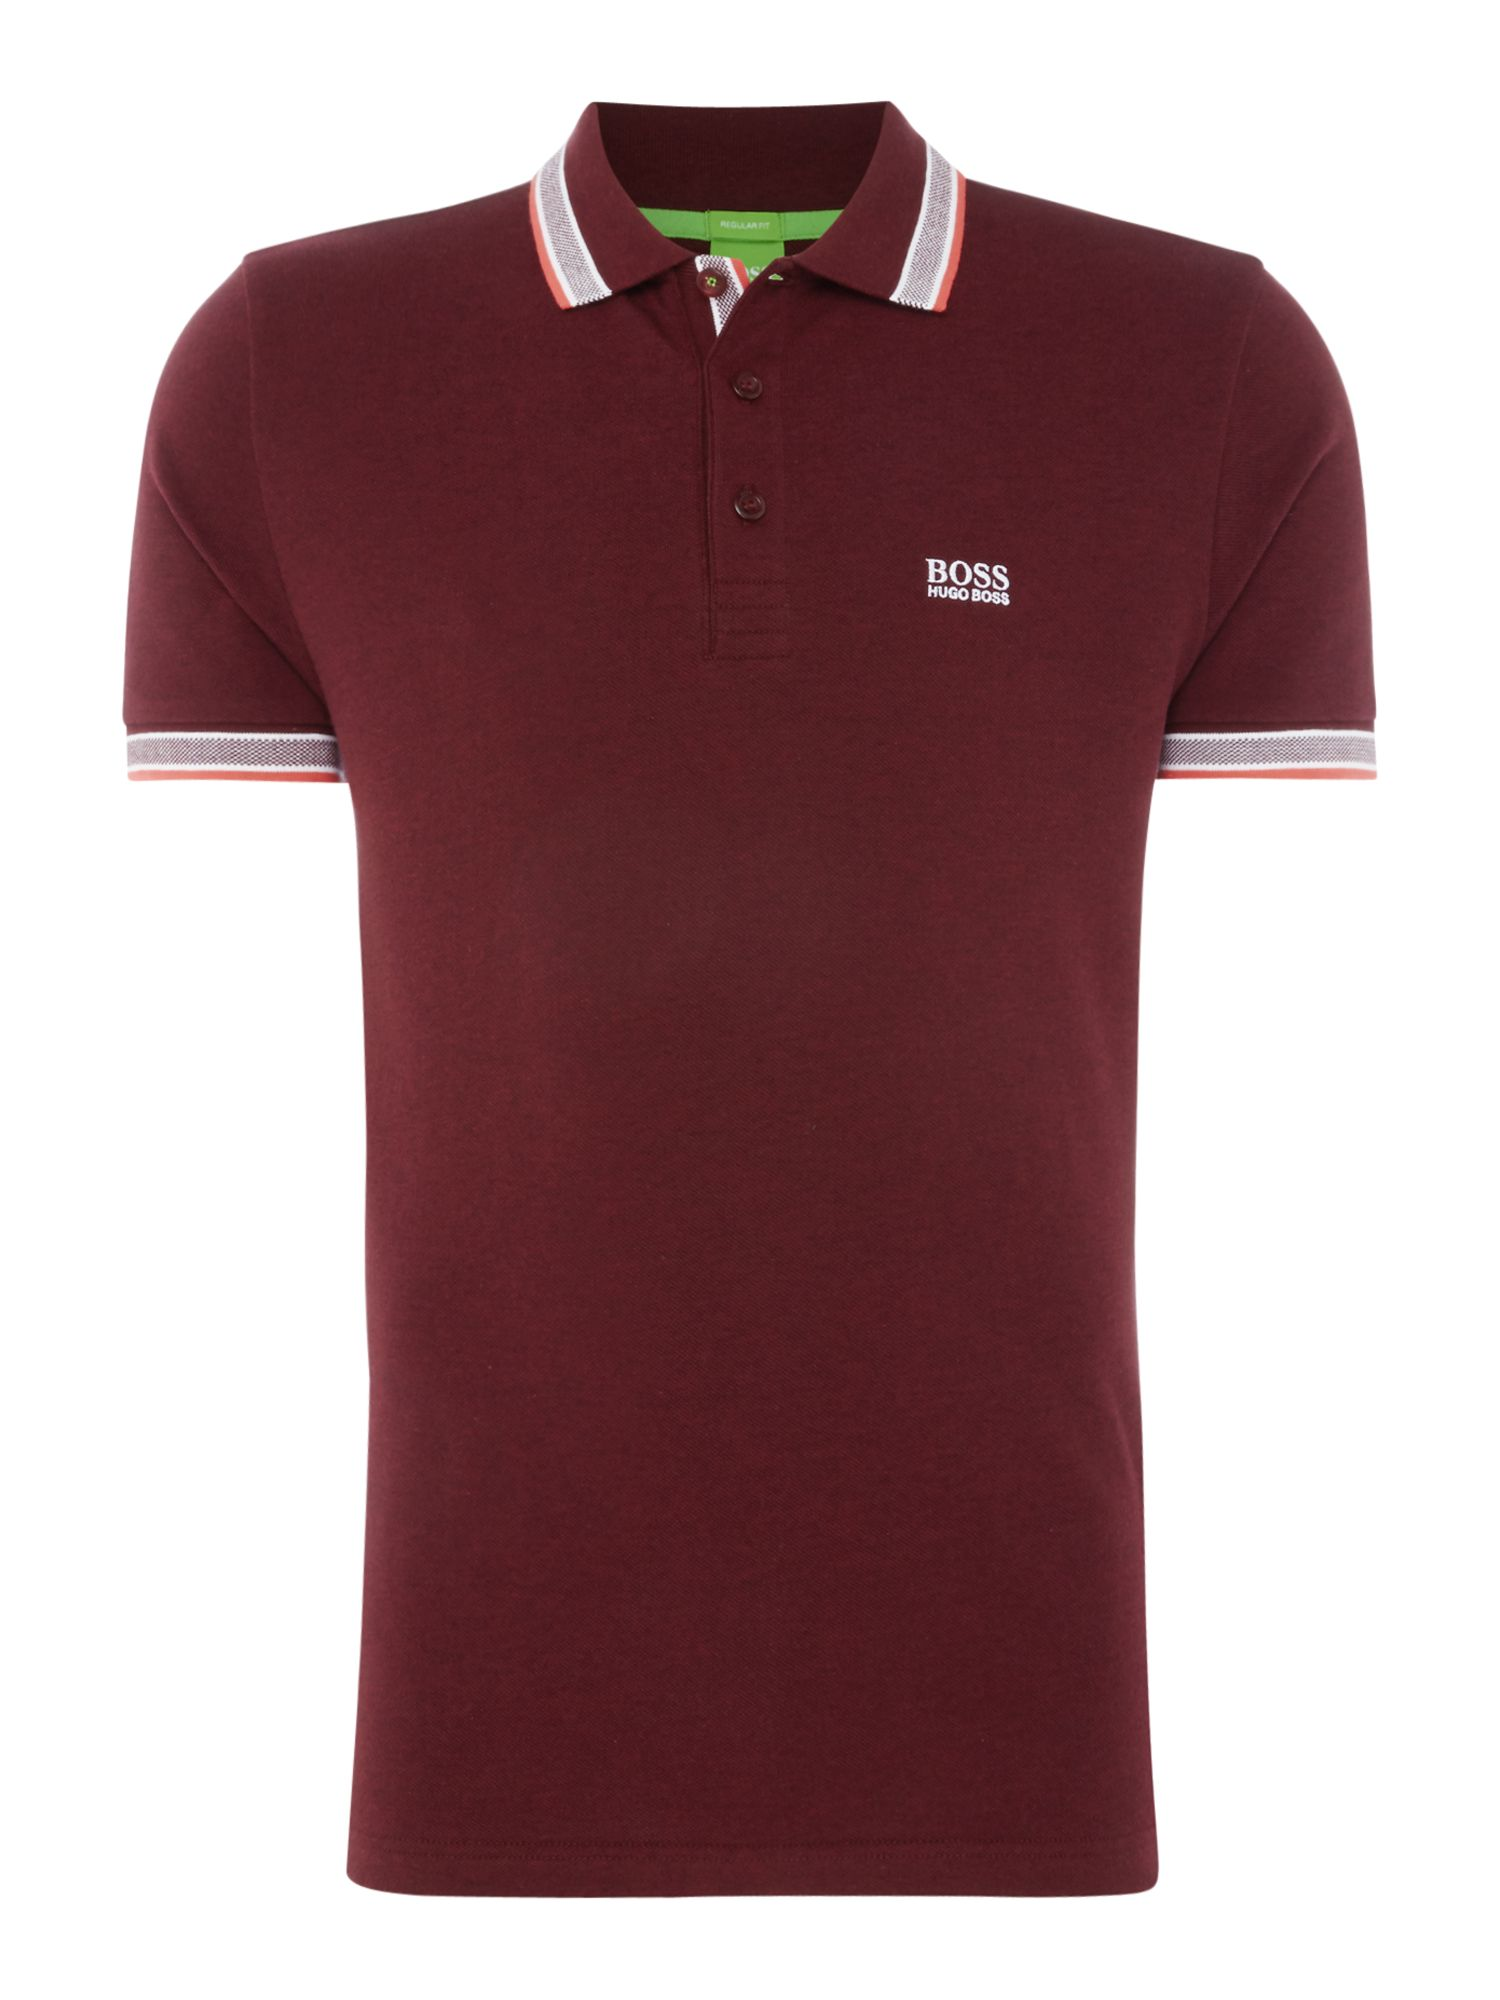 Men's Hugo Boss Paddy Short Sleeve Polo Shirt, Red Marl